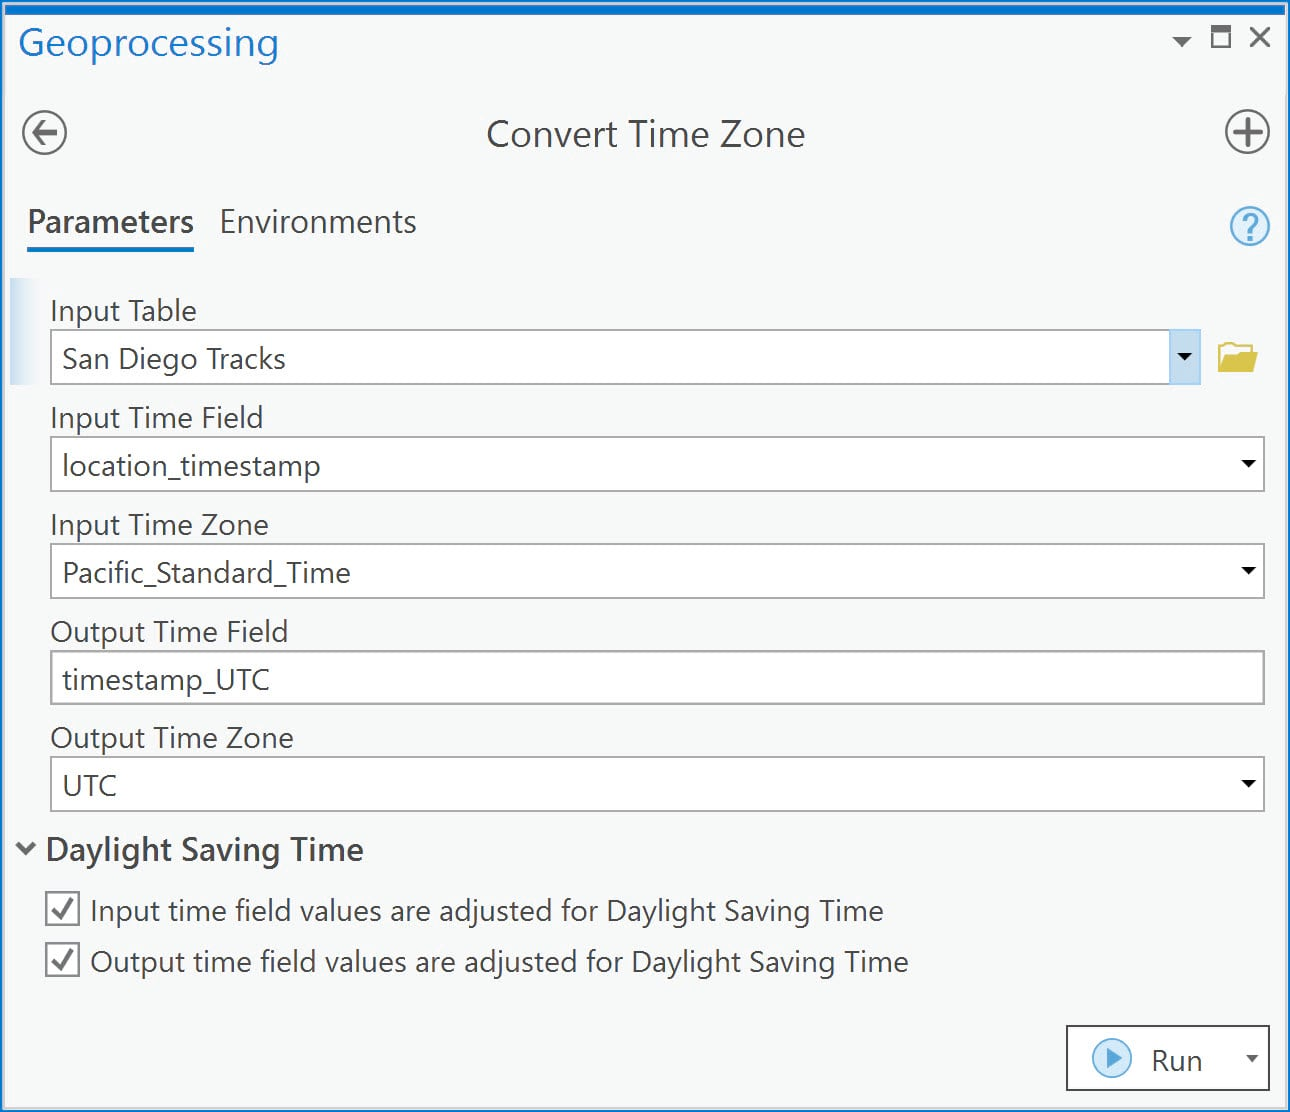 Convert Time Zone tool